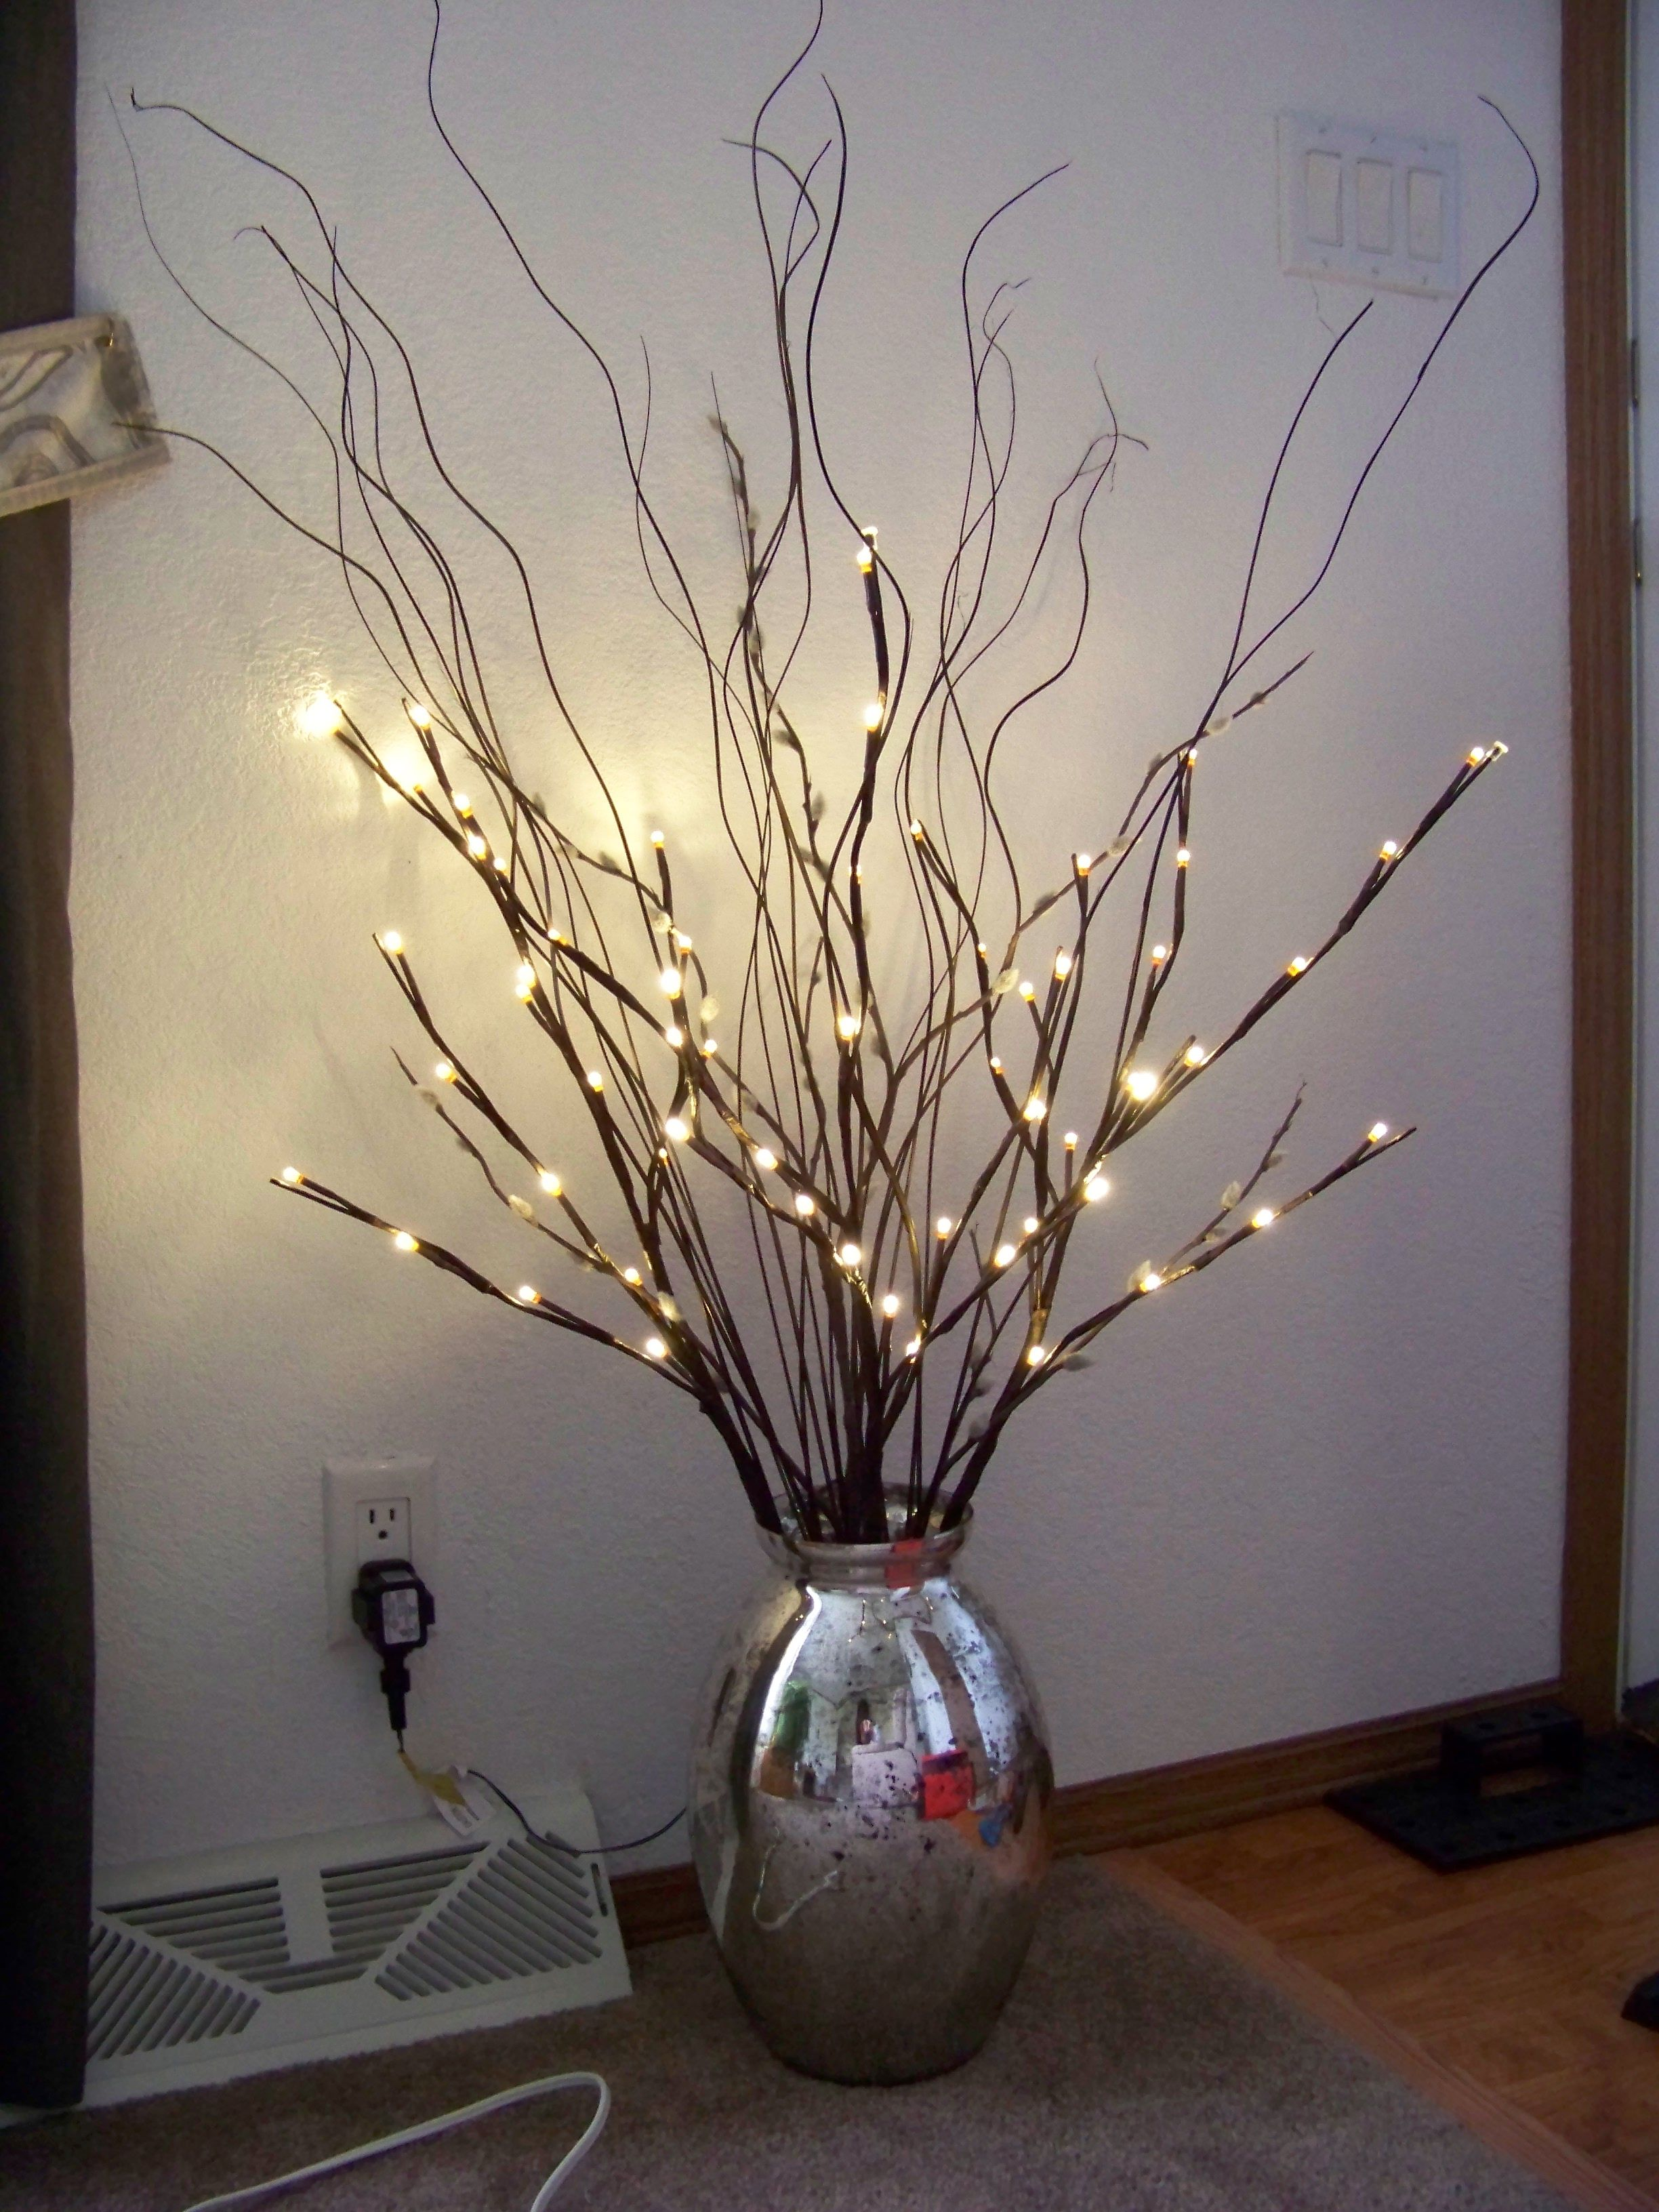 image result for lighted twig branches glass vase plants